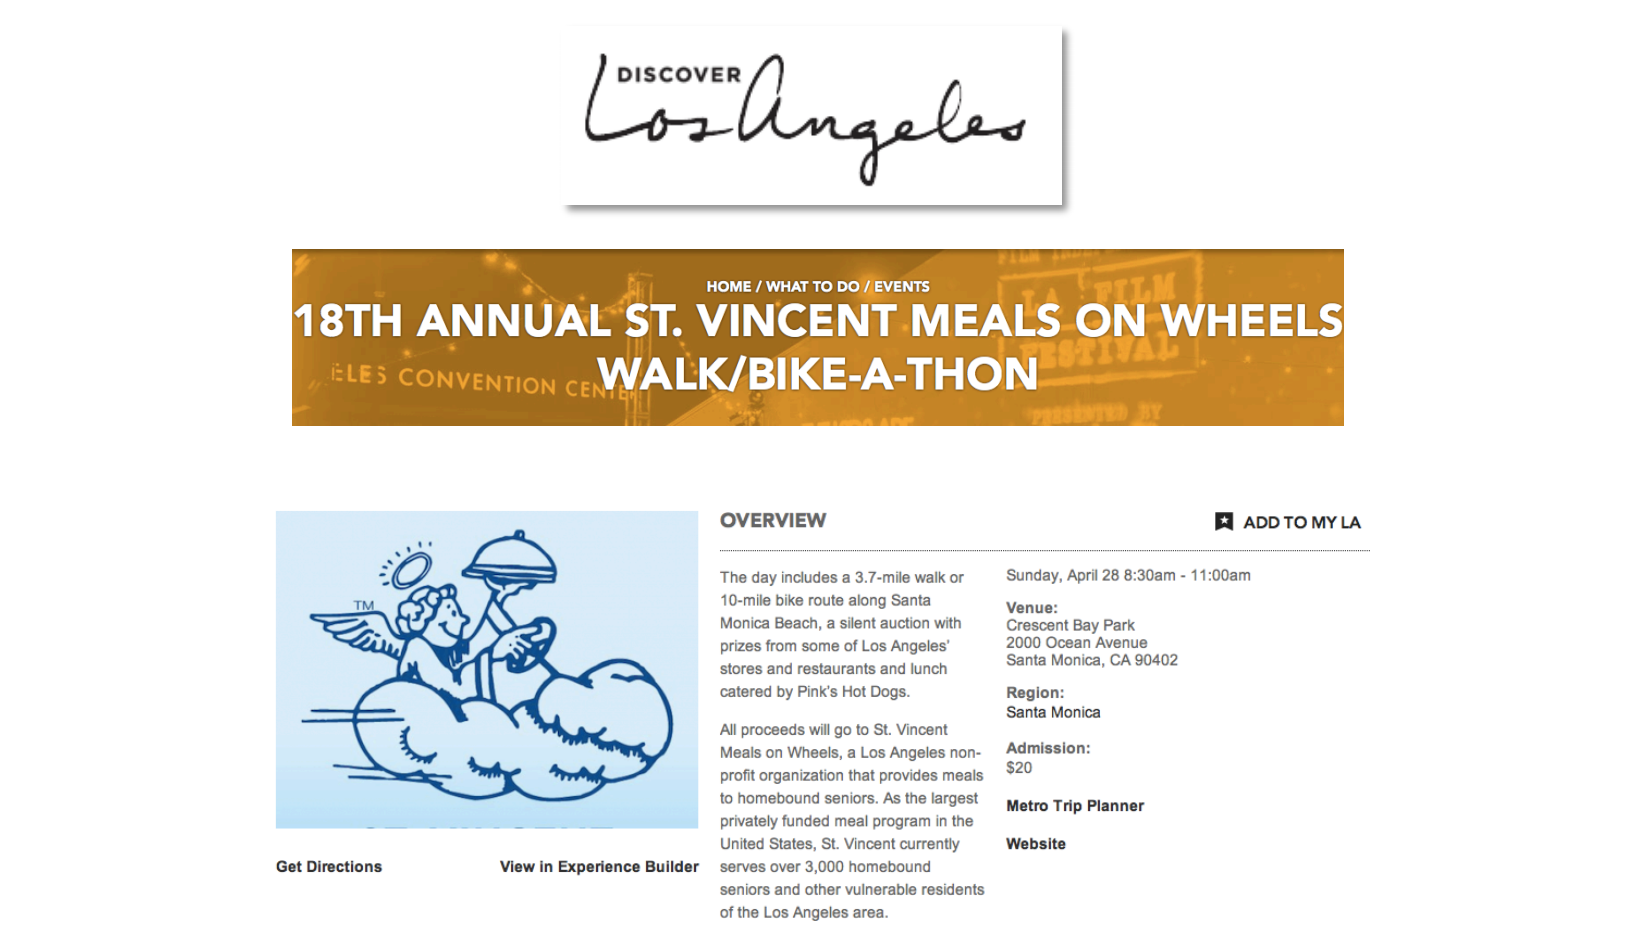 The mission of St. Vincent Meals on Wheels is to prepare and deliver nutritious meals to homebound seniors and other vulnerable residents across Los Angeles.